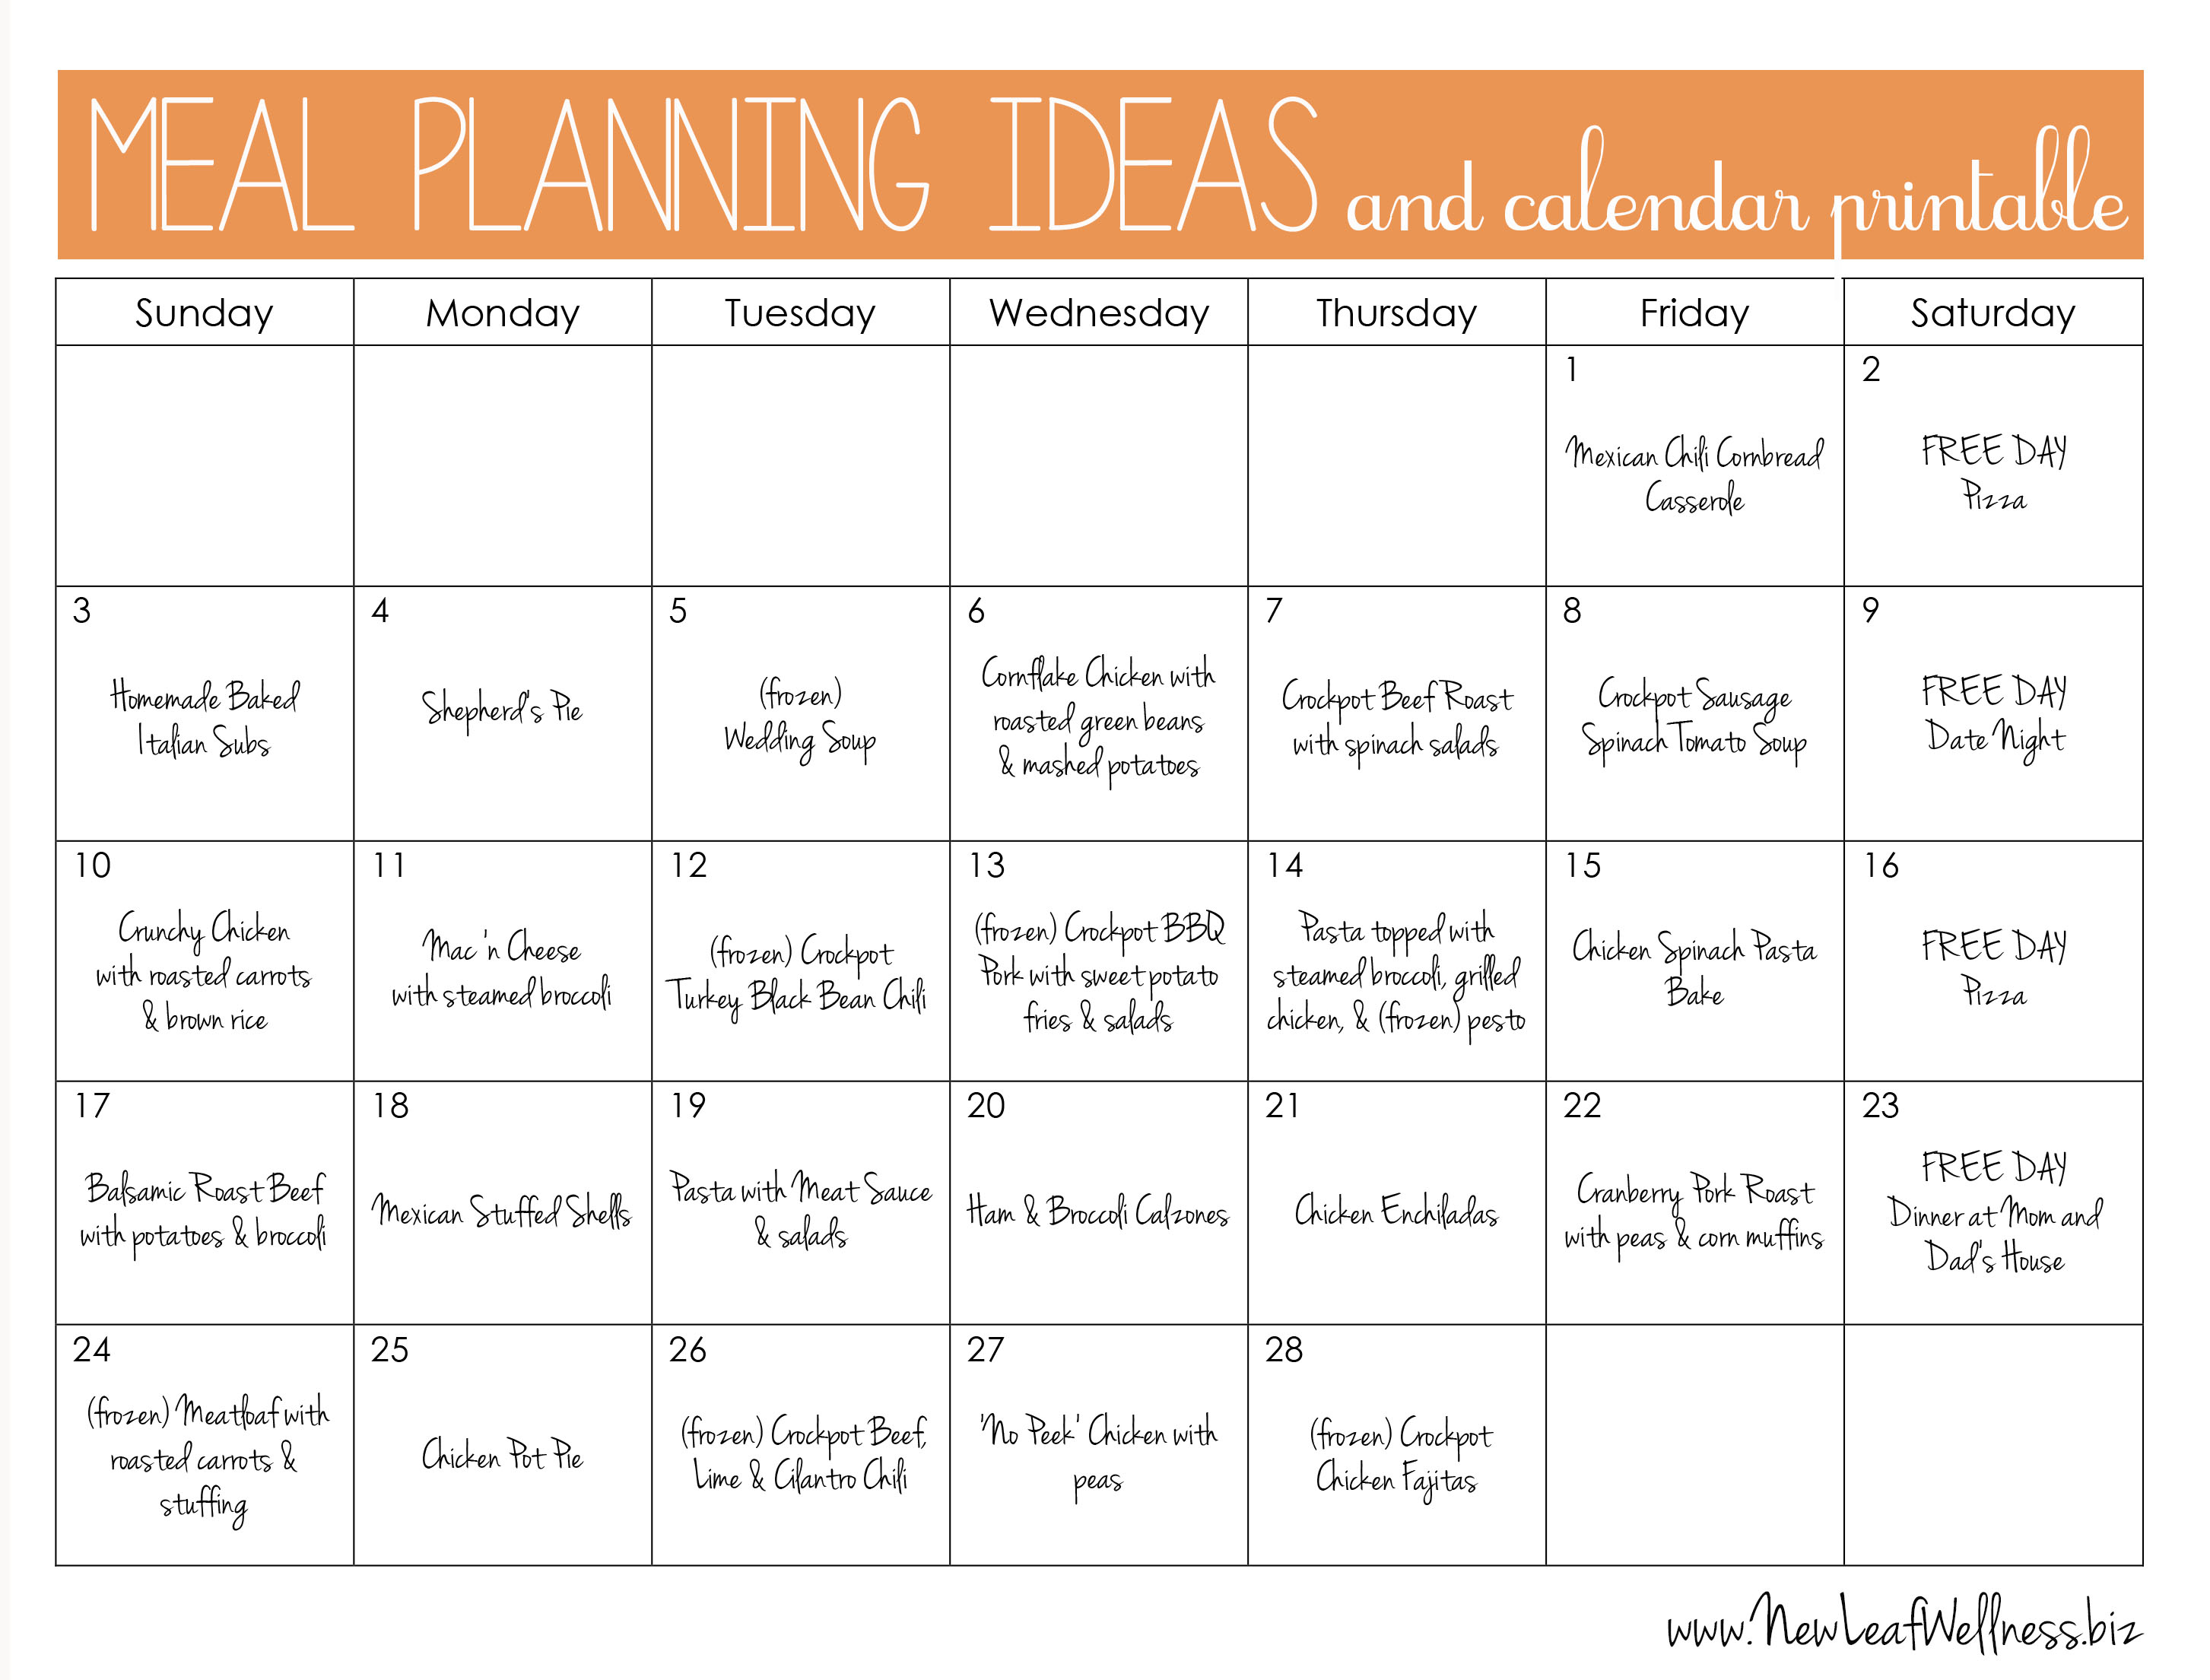 8 Images of Meal Plan Calendar Printable